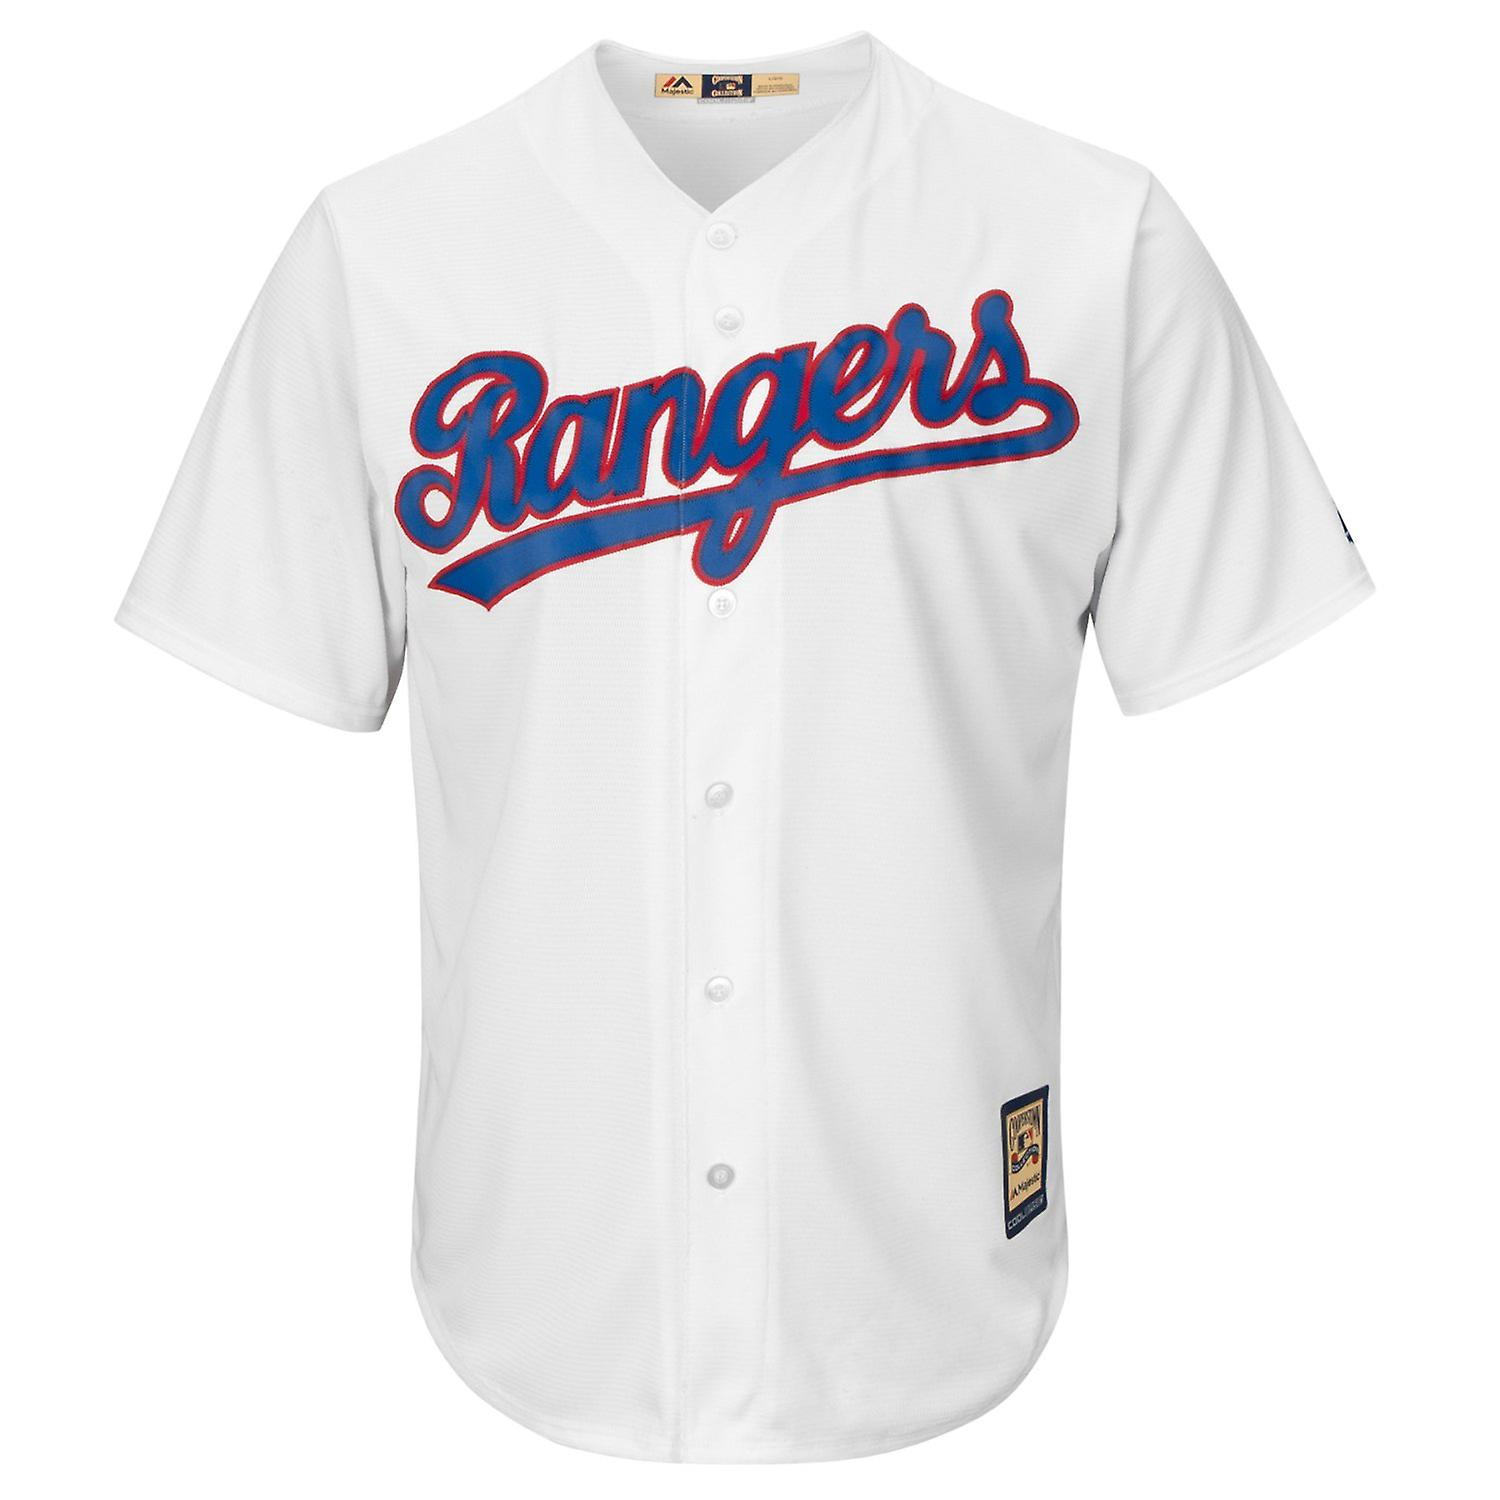 Cooperrider Townsend majestueux cool base Jersey - Texas Rangers